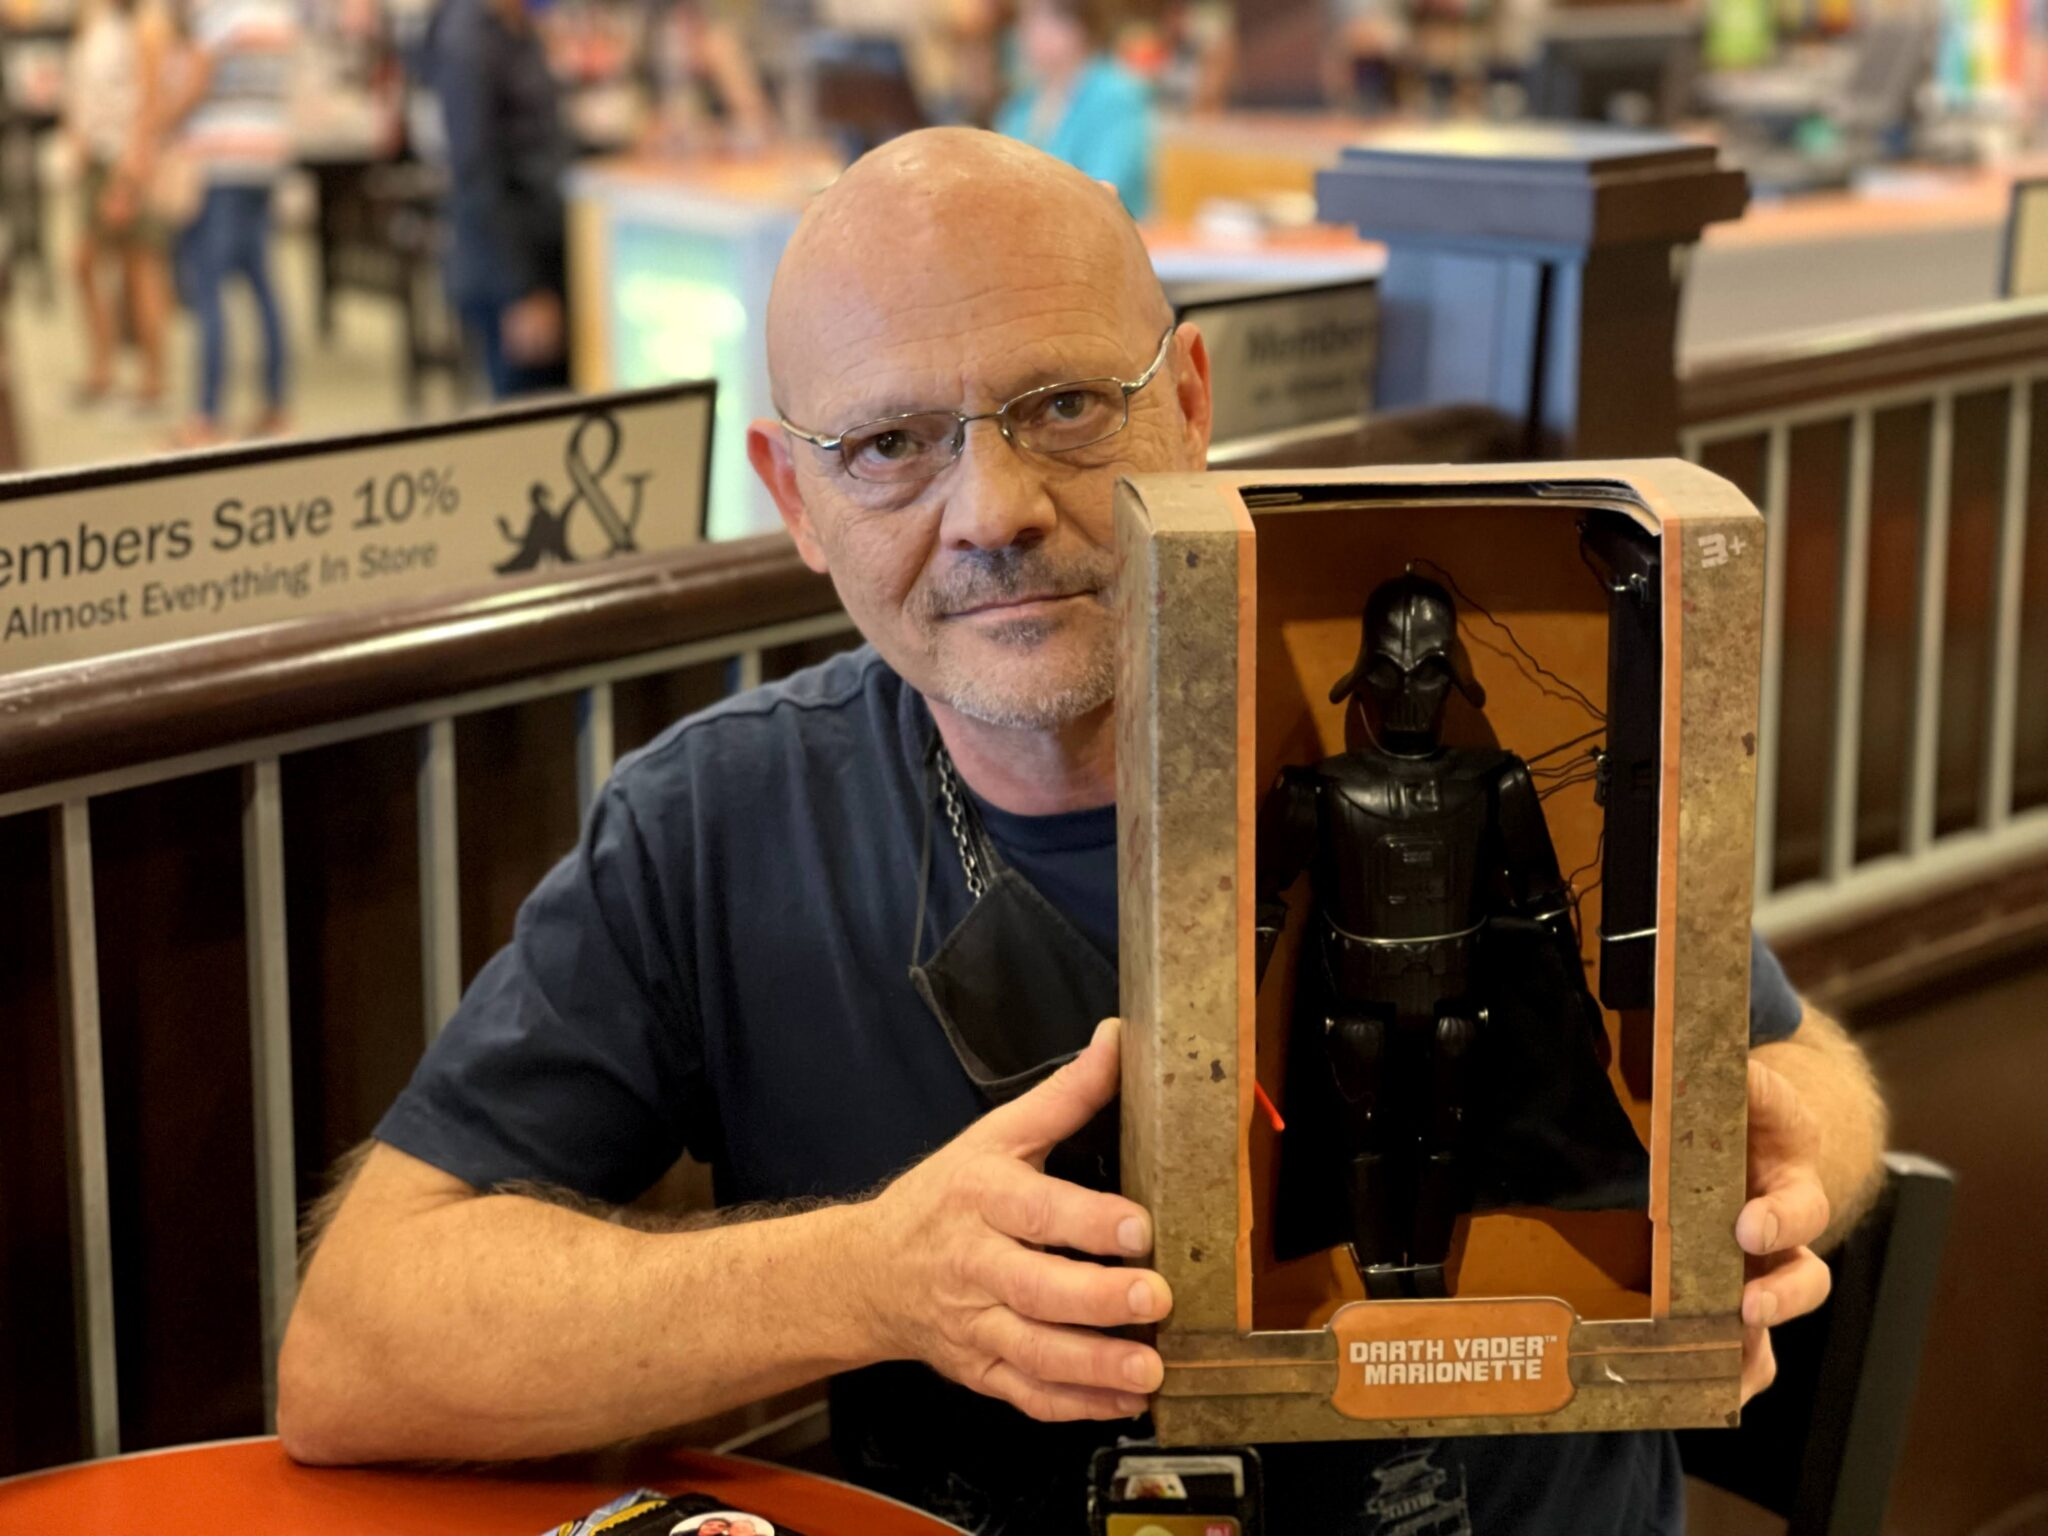 Props designer David Hyde with Darth Vader Marionette toy from Star Wars Galaxy's Edge